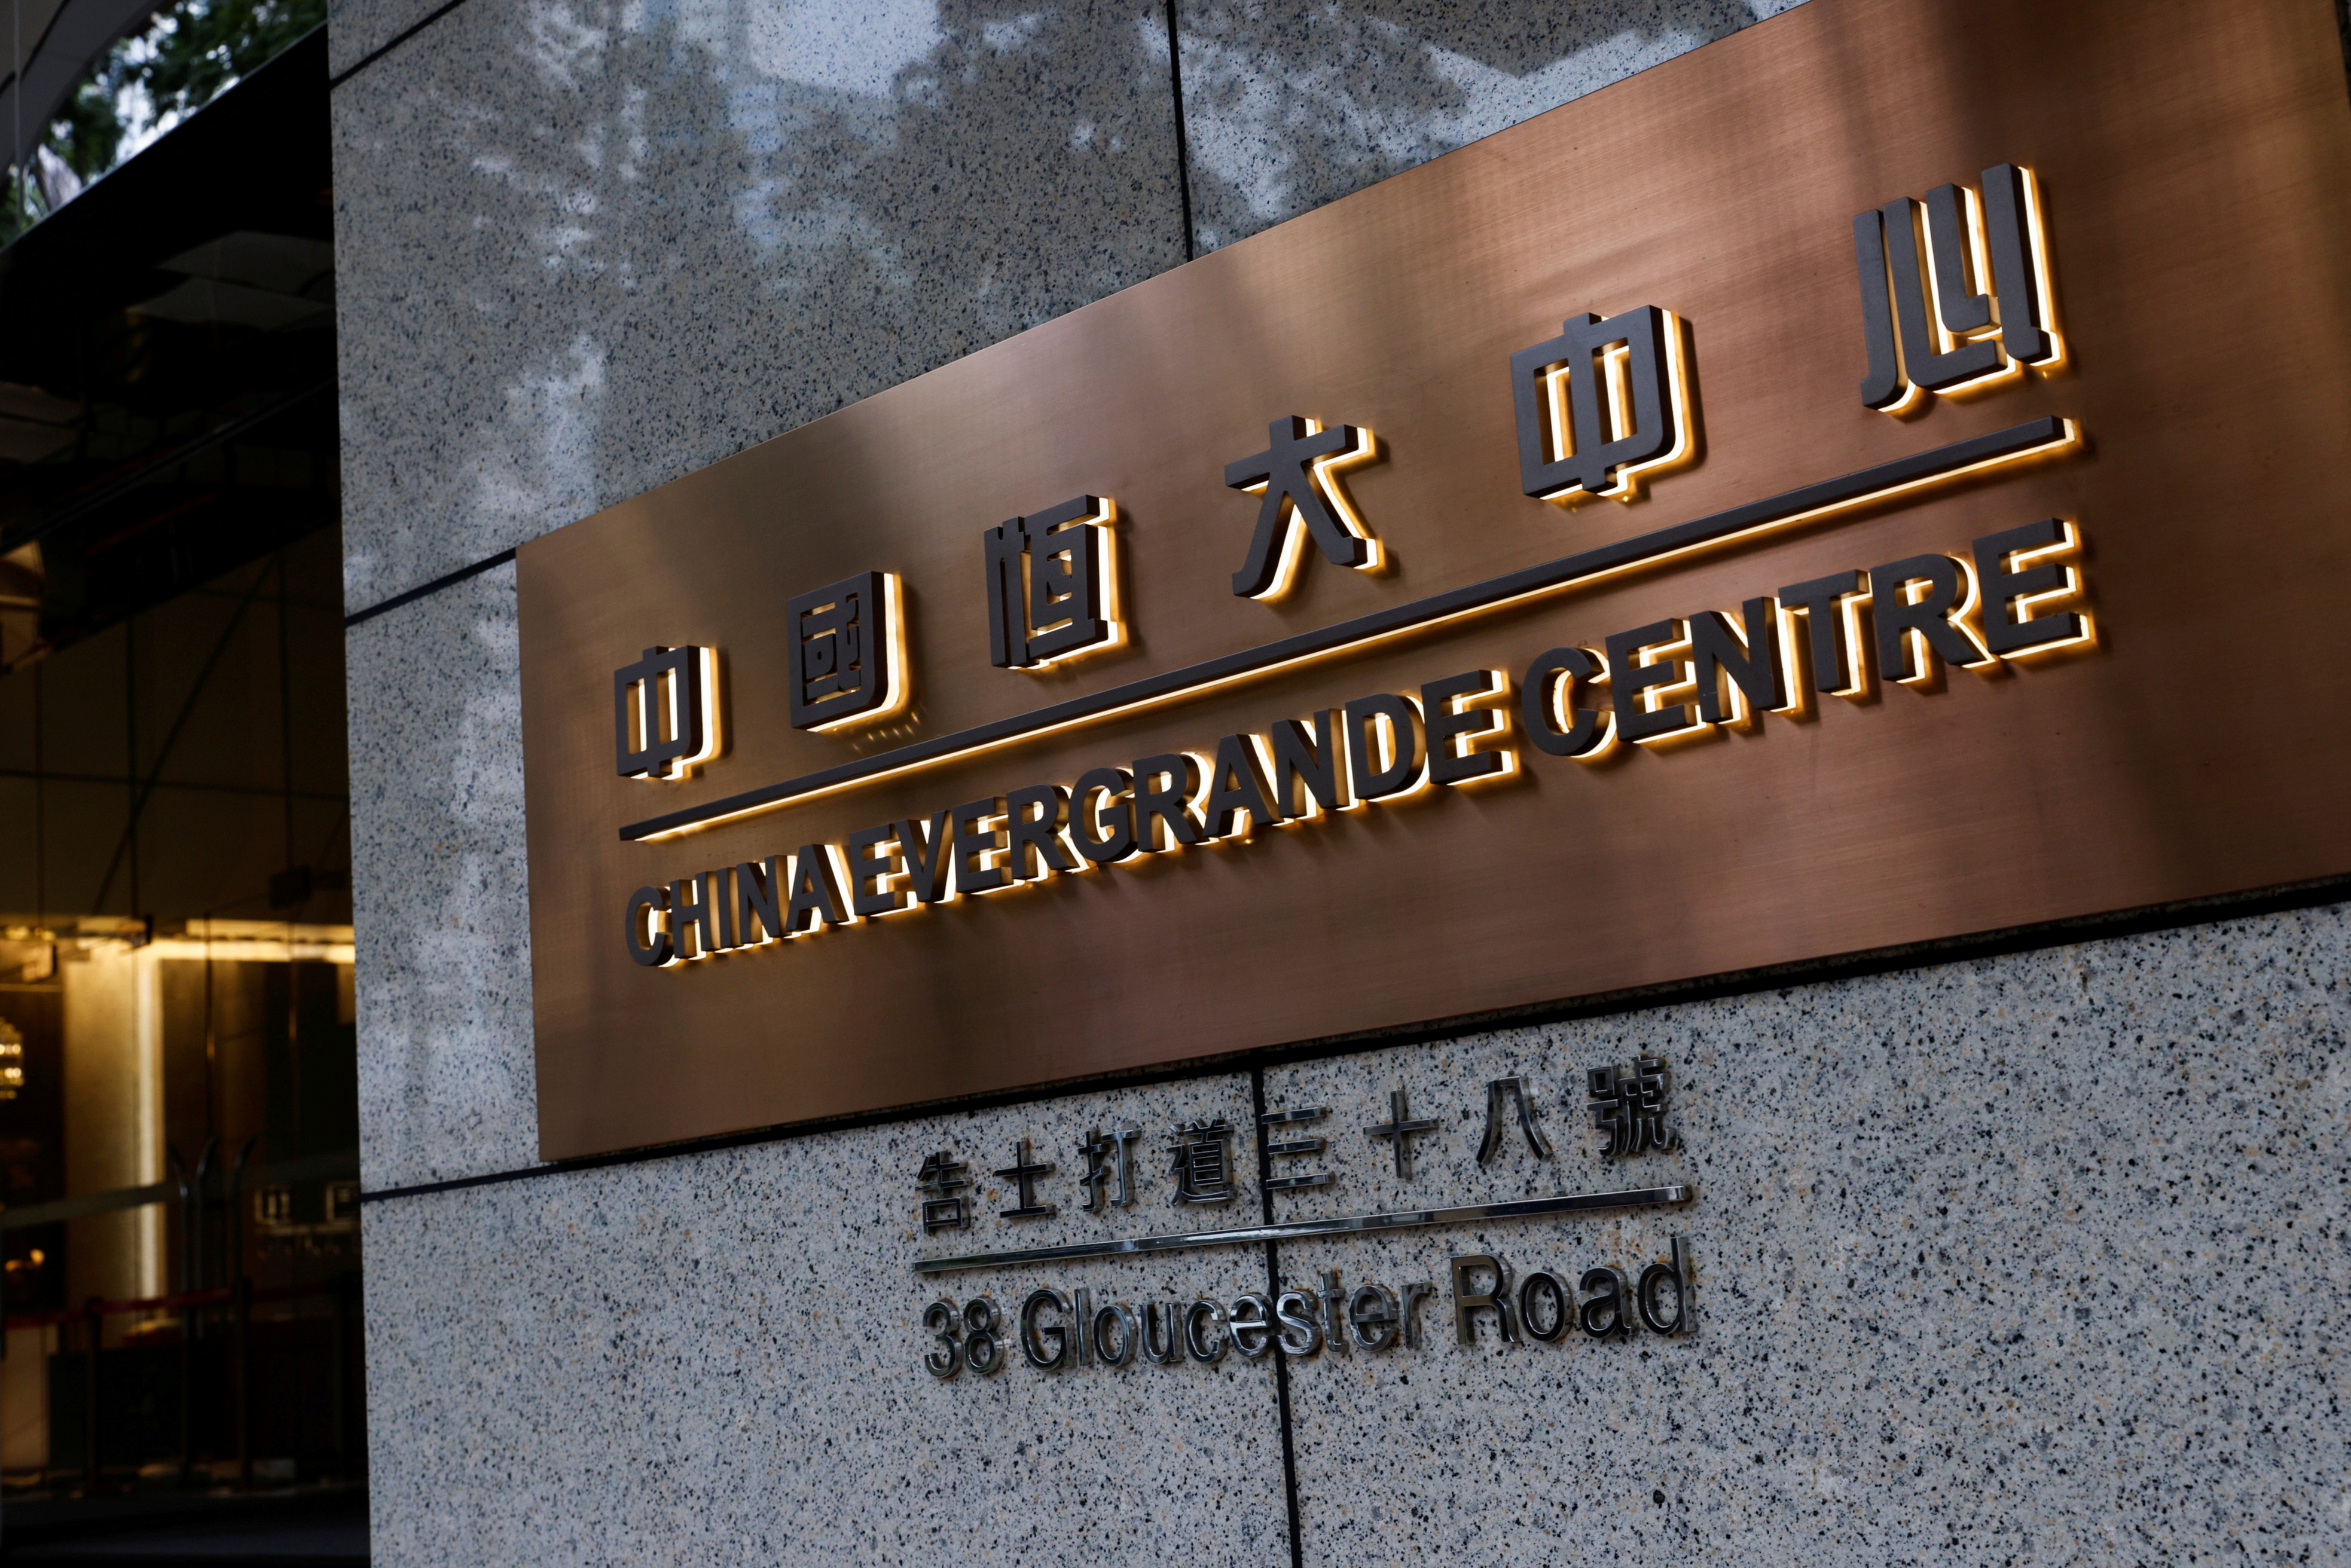 The China Evergrande Centre building sign is seen in Hong Kong, China. August 25, 2021. REUTERS/Tyrone Siu/File Photo